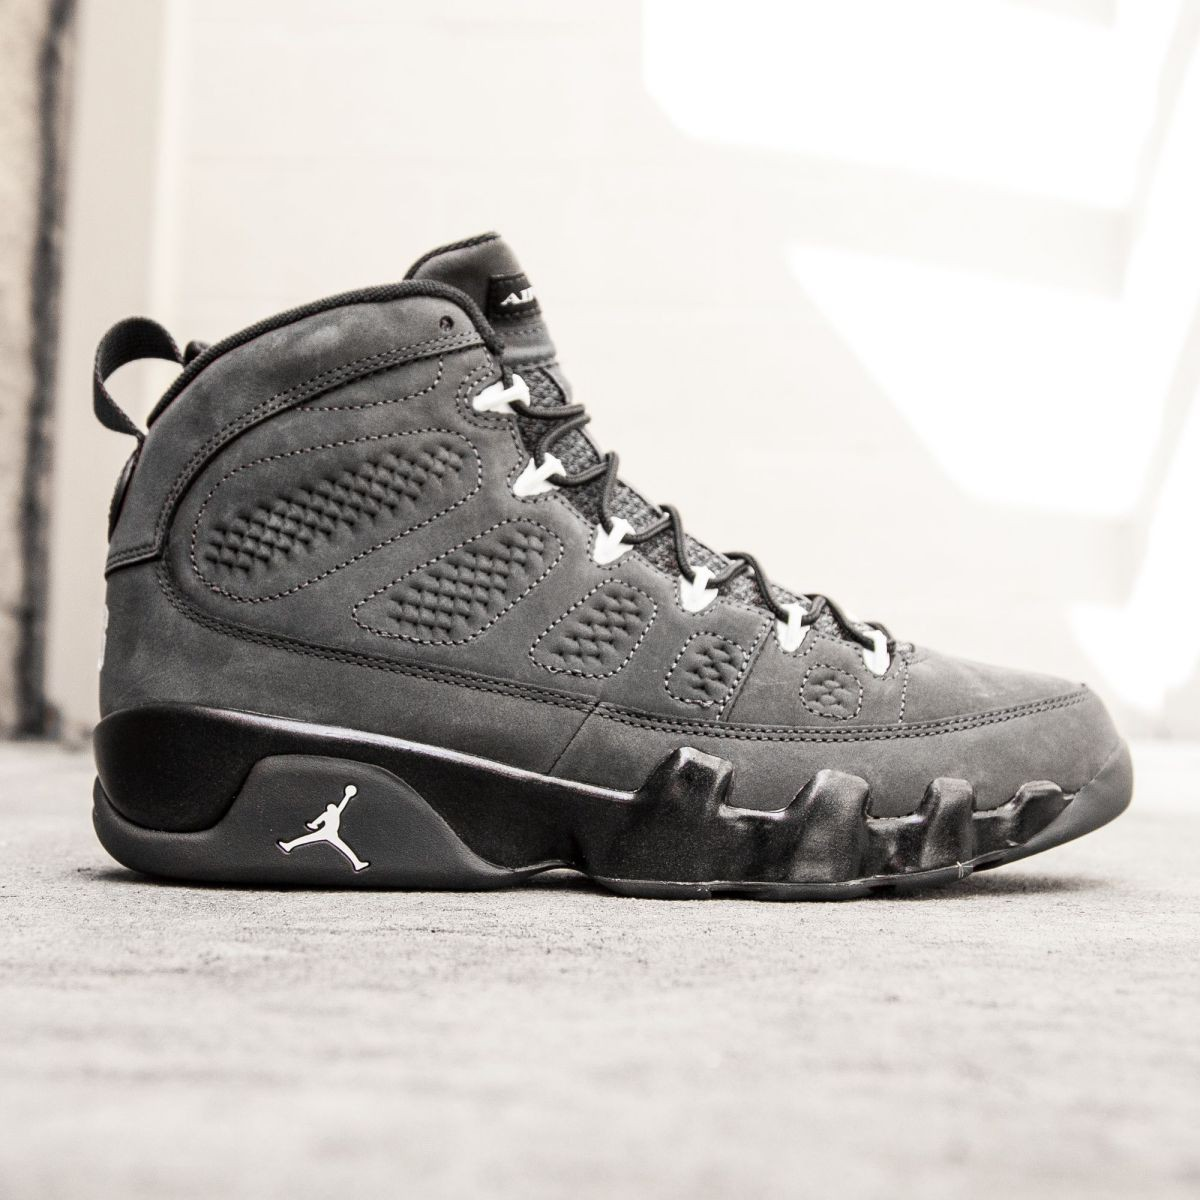 new product 56b4d de0bf Jordan Men Air Jordan 9 Retro gray anthracite white black